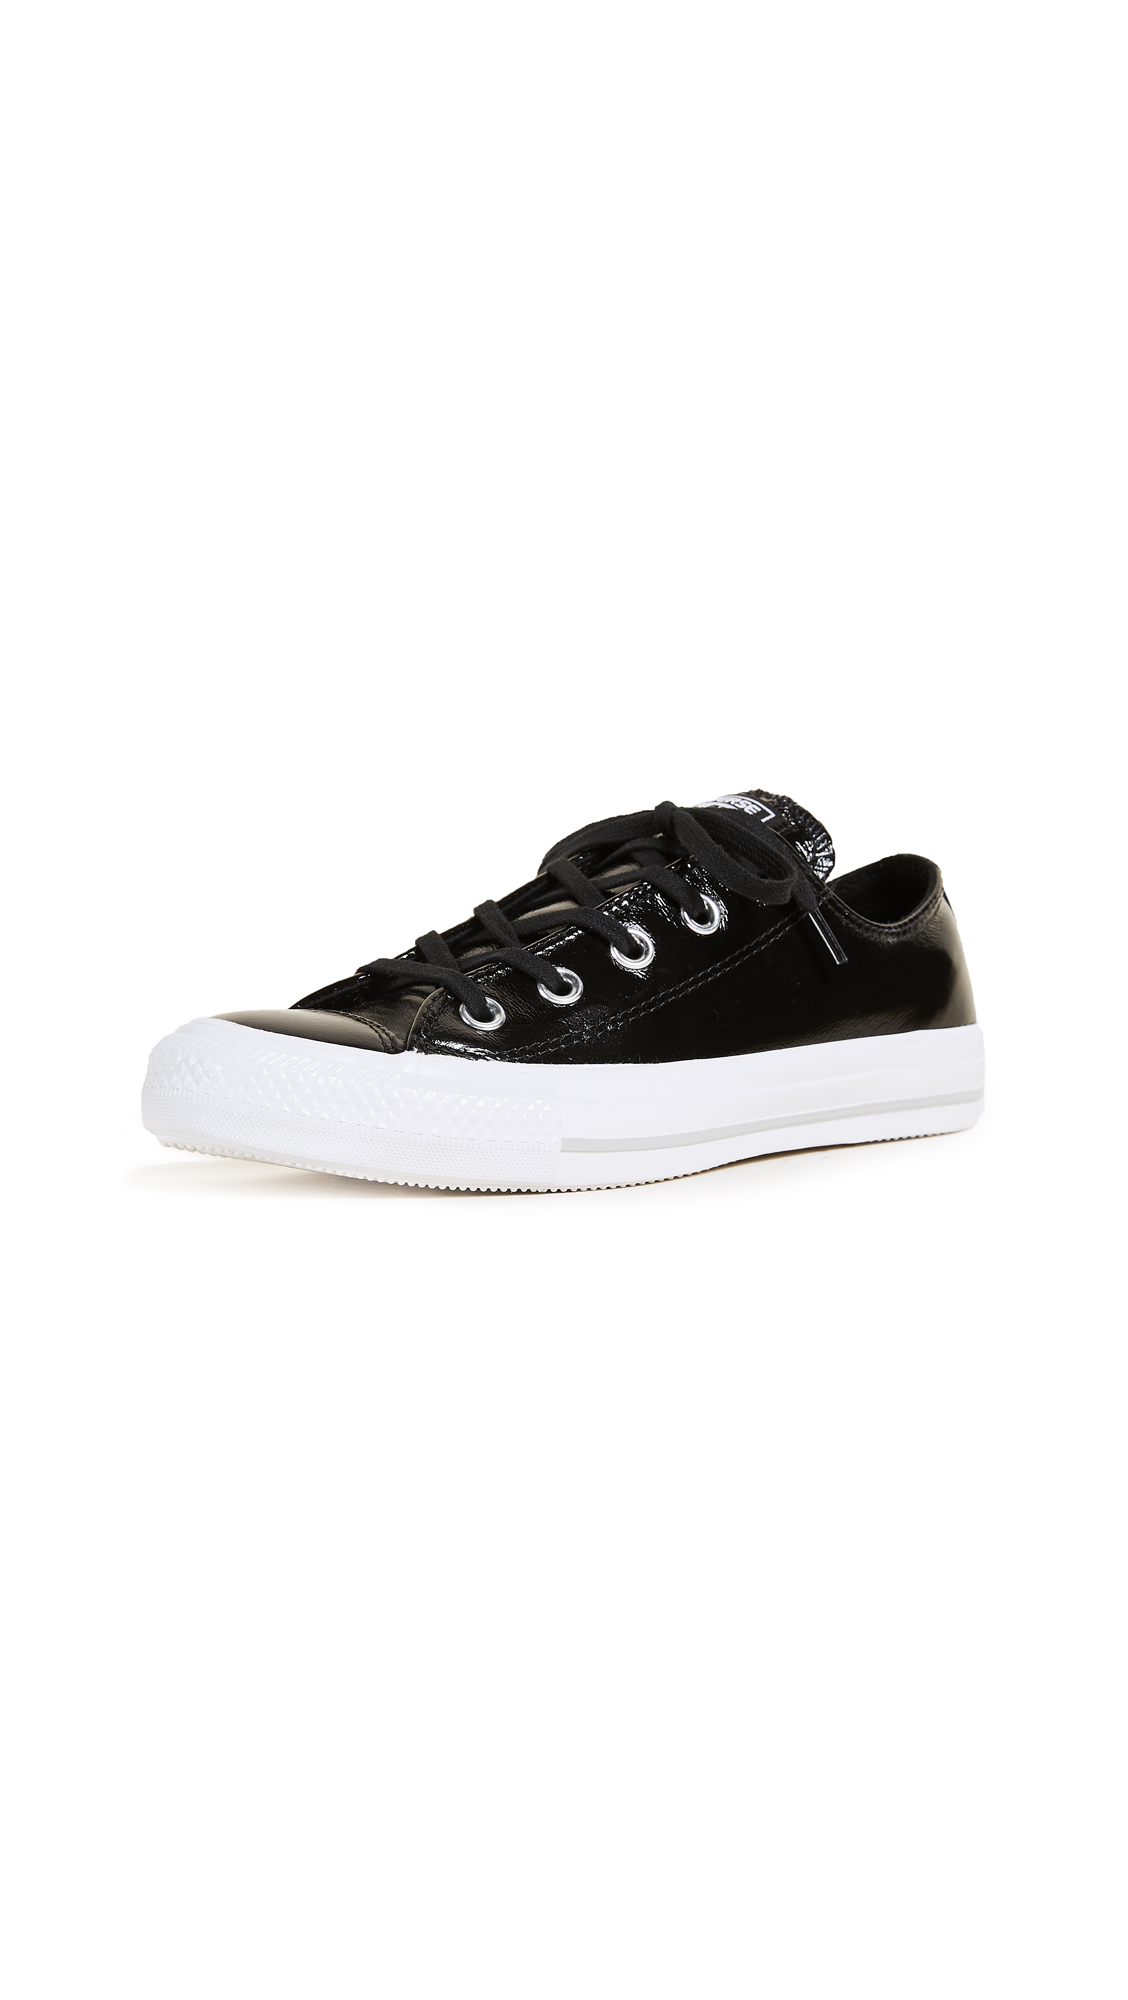 Converse Chuck Taylor All Star Crinkled Ox - Black/Black/White